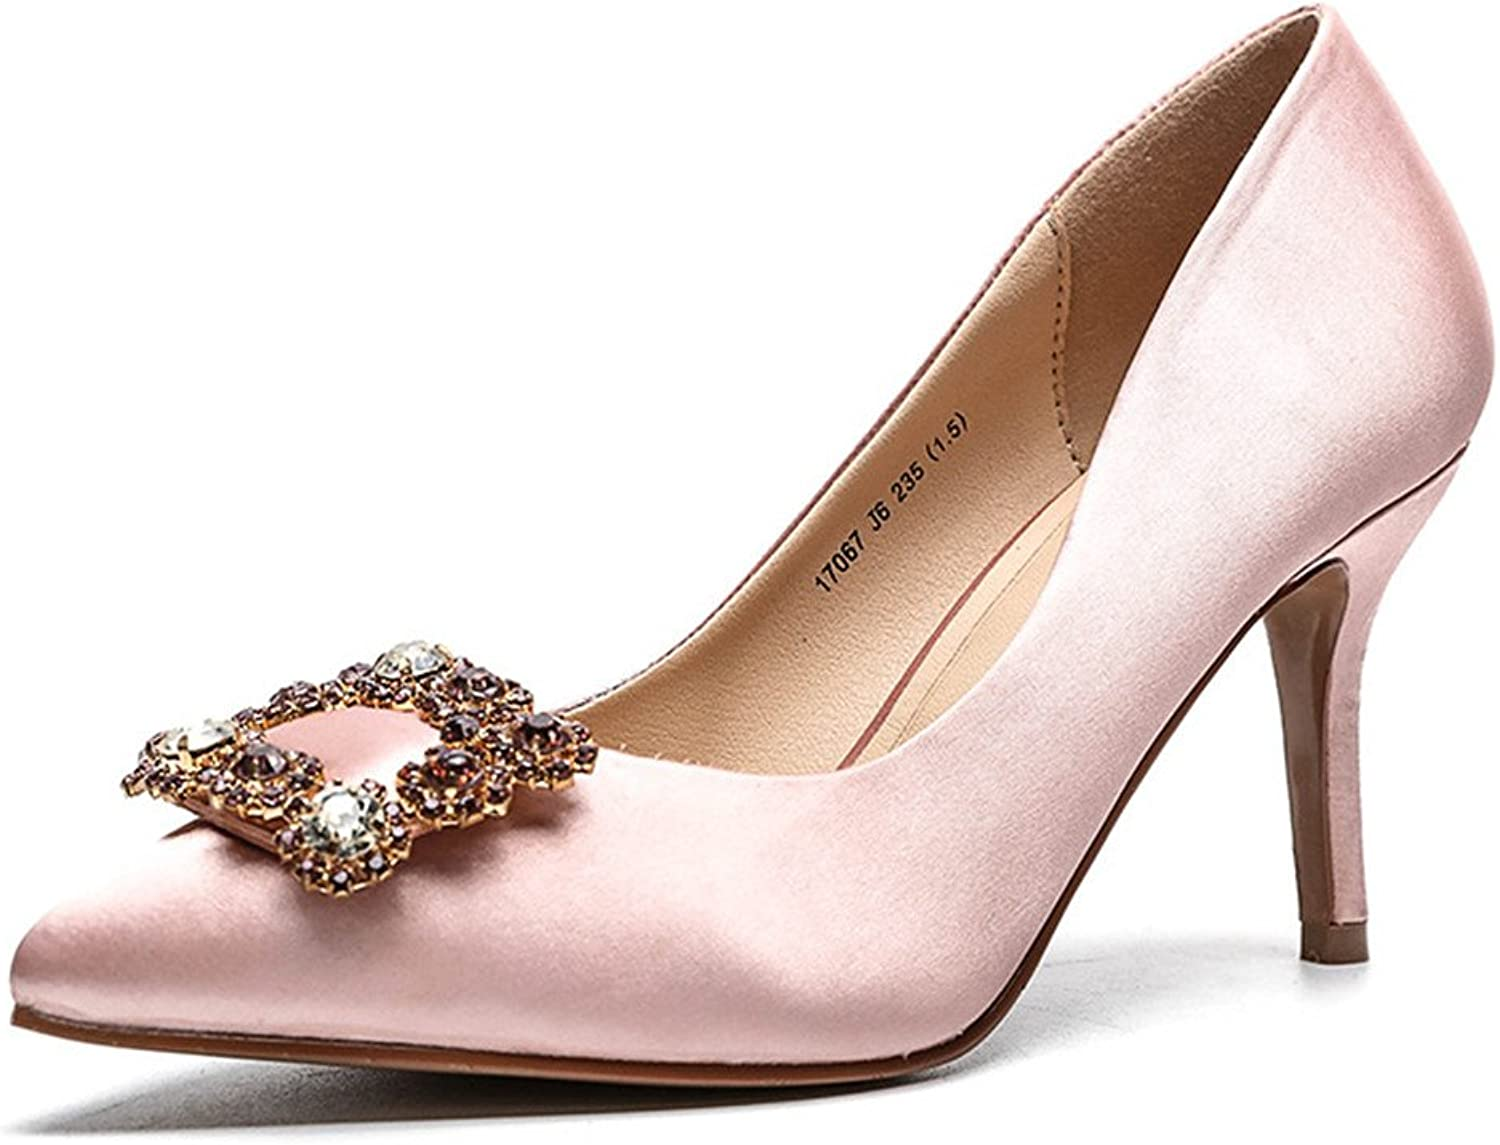 FORTUN Square Buckle Rhinestone Single shoes Women's high-Heeled shoes Pointed Toe